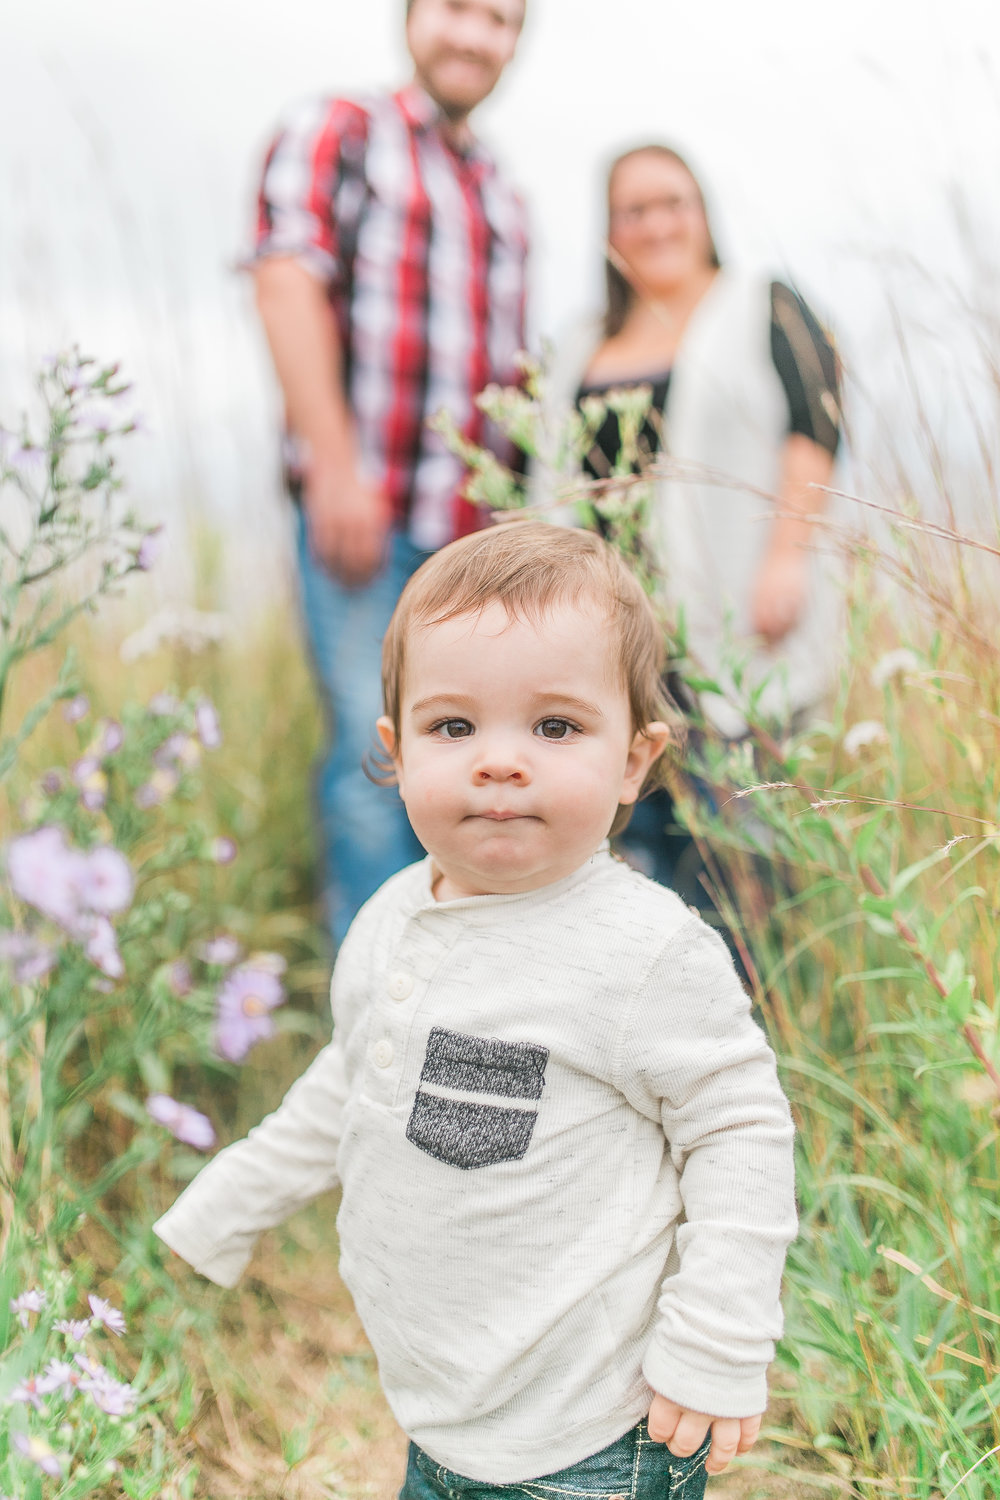 vanessa wyler pewaukee milestone one year old session